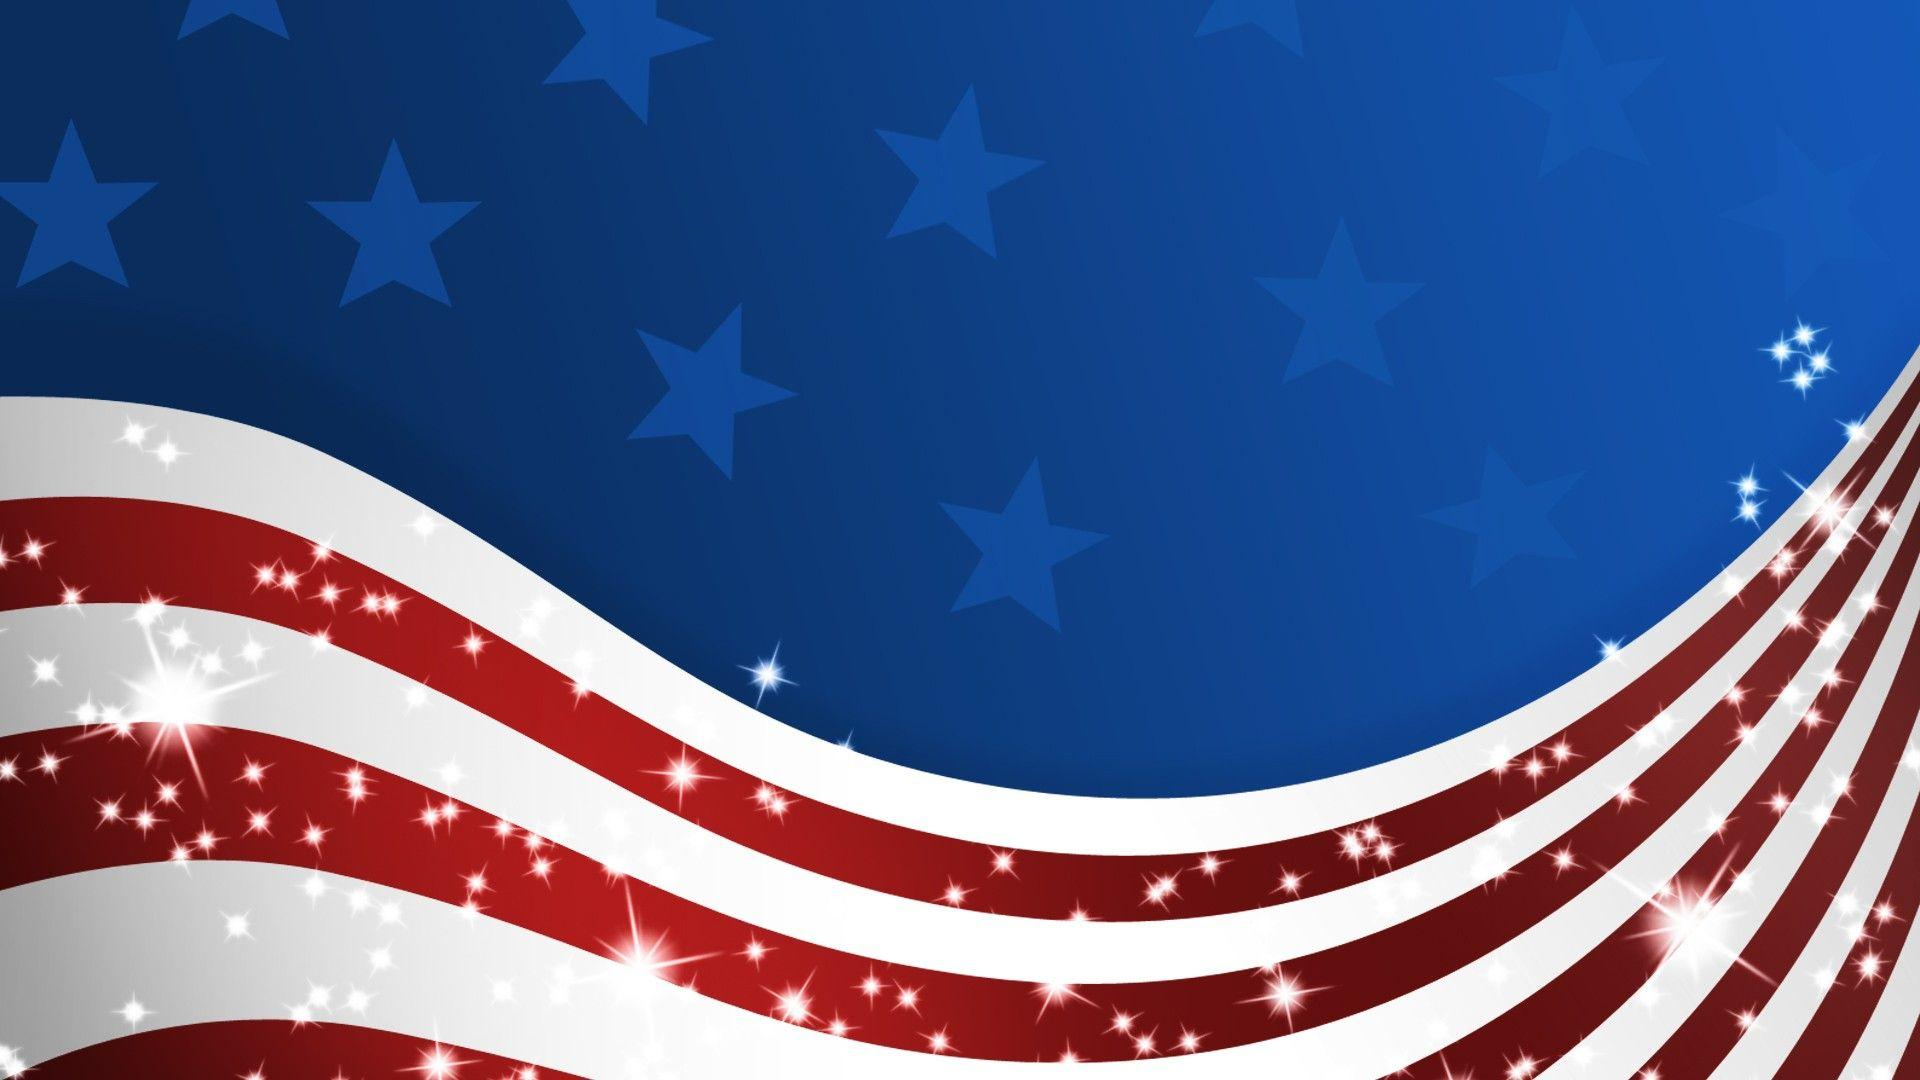 Stars And Stripes Backgrounds - - 115.5KB